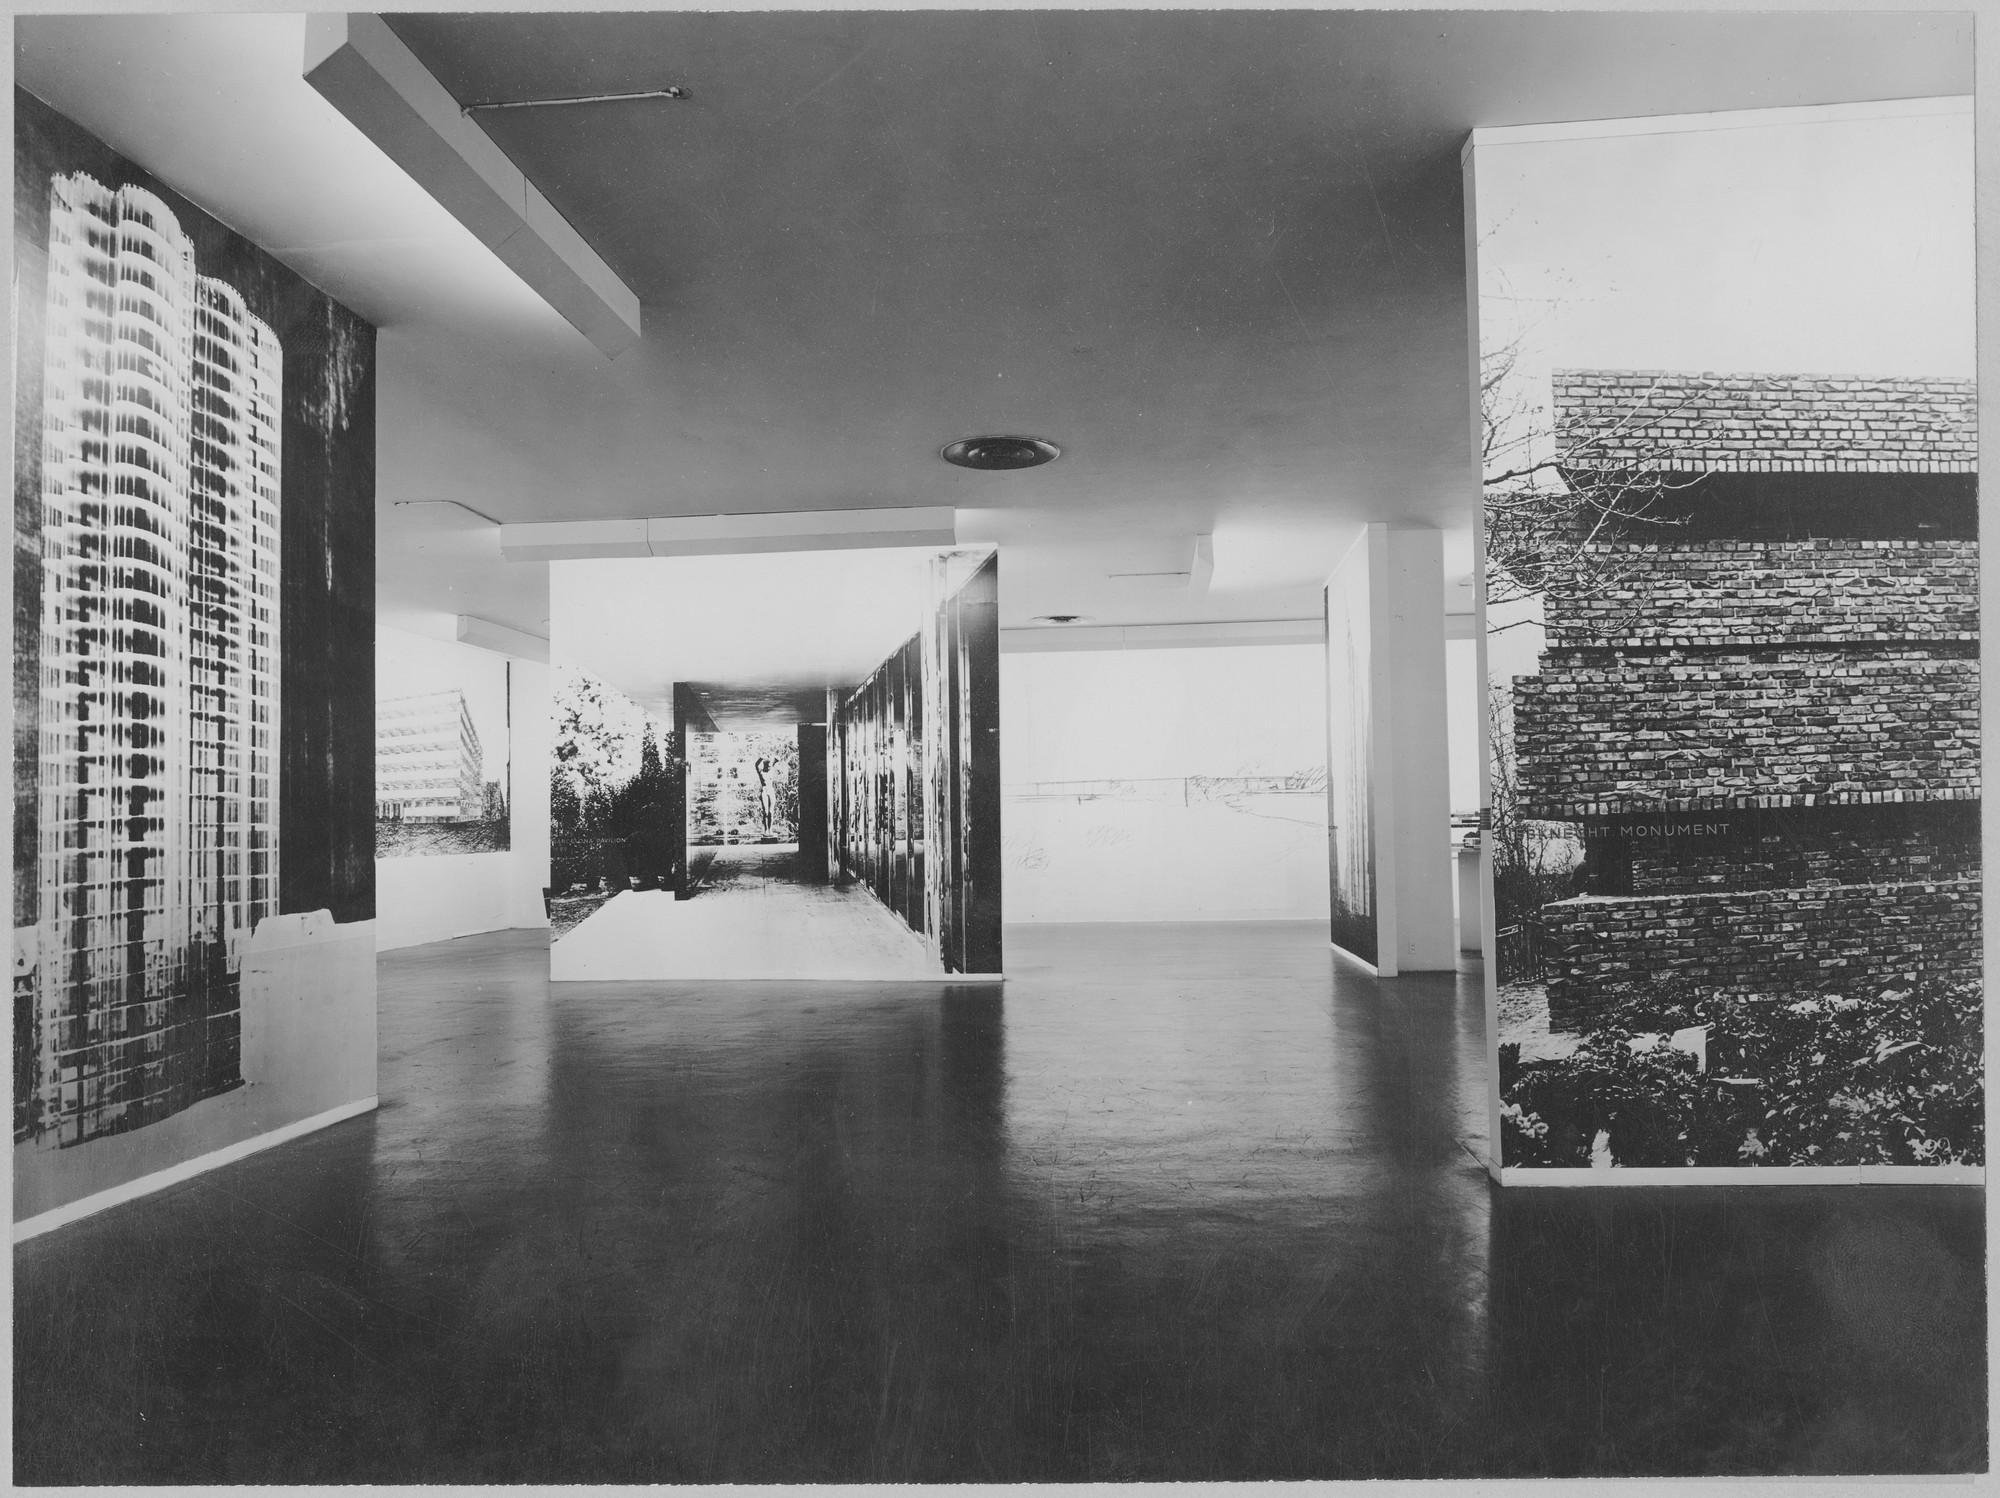 "Installation view of the exhibition, ""Mies van der Rohe."" September 16, 1947–January 25, 1948. Photographic Archive. The Museum of Modern Art Archives, New York. IN356.1. Photograph by Soichi Sunami."